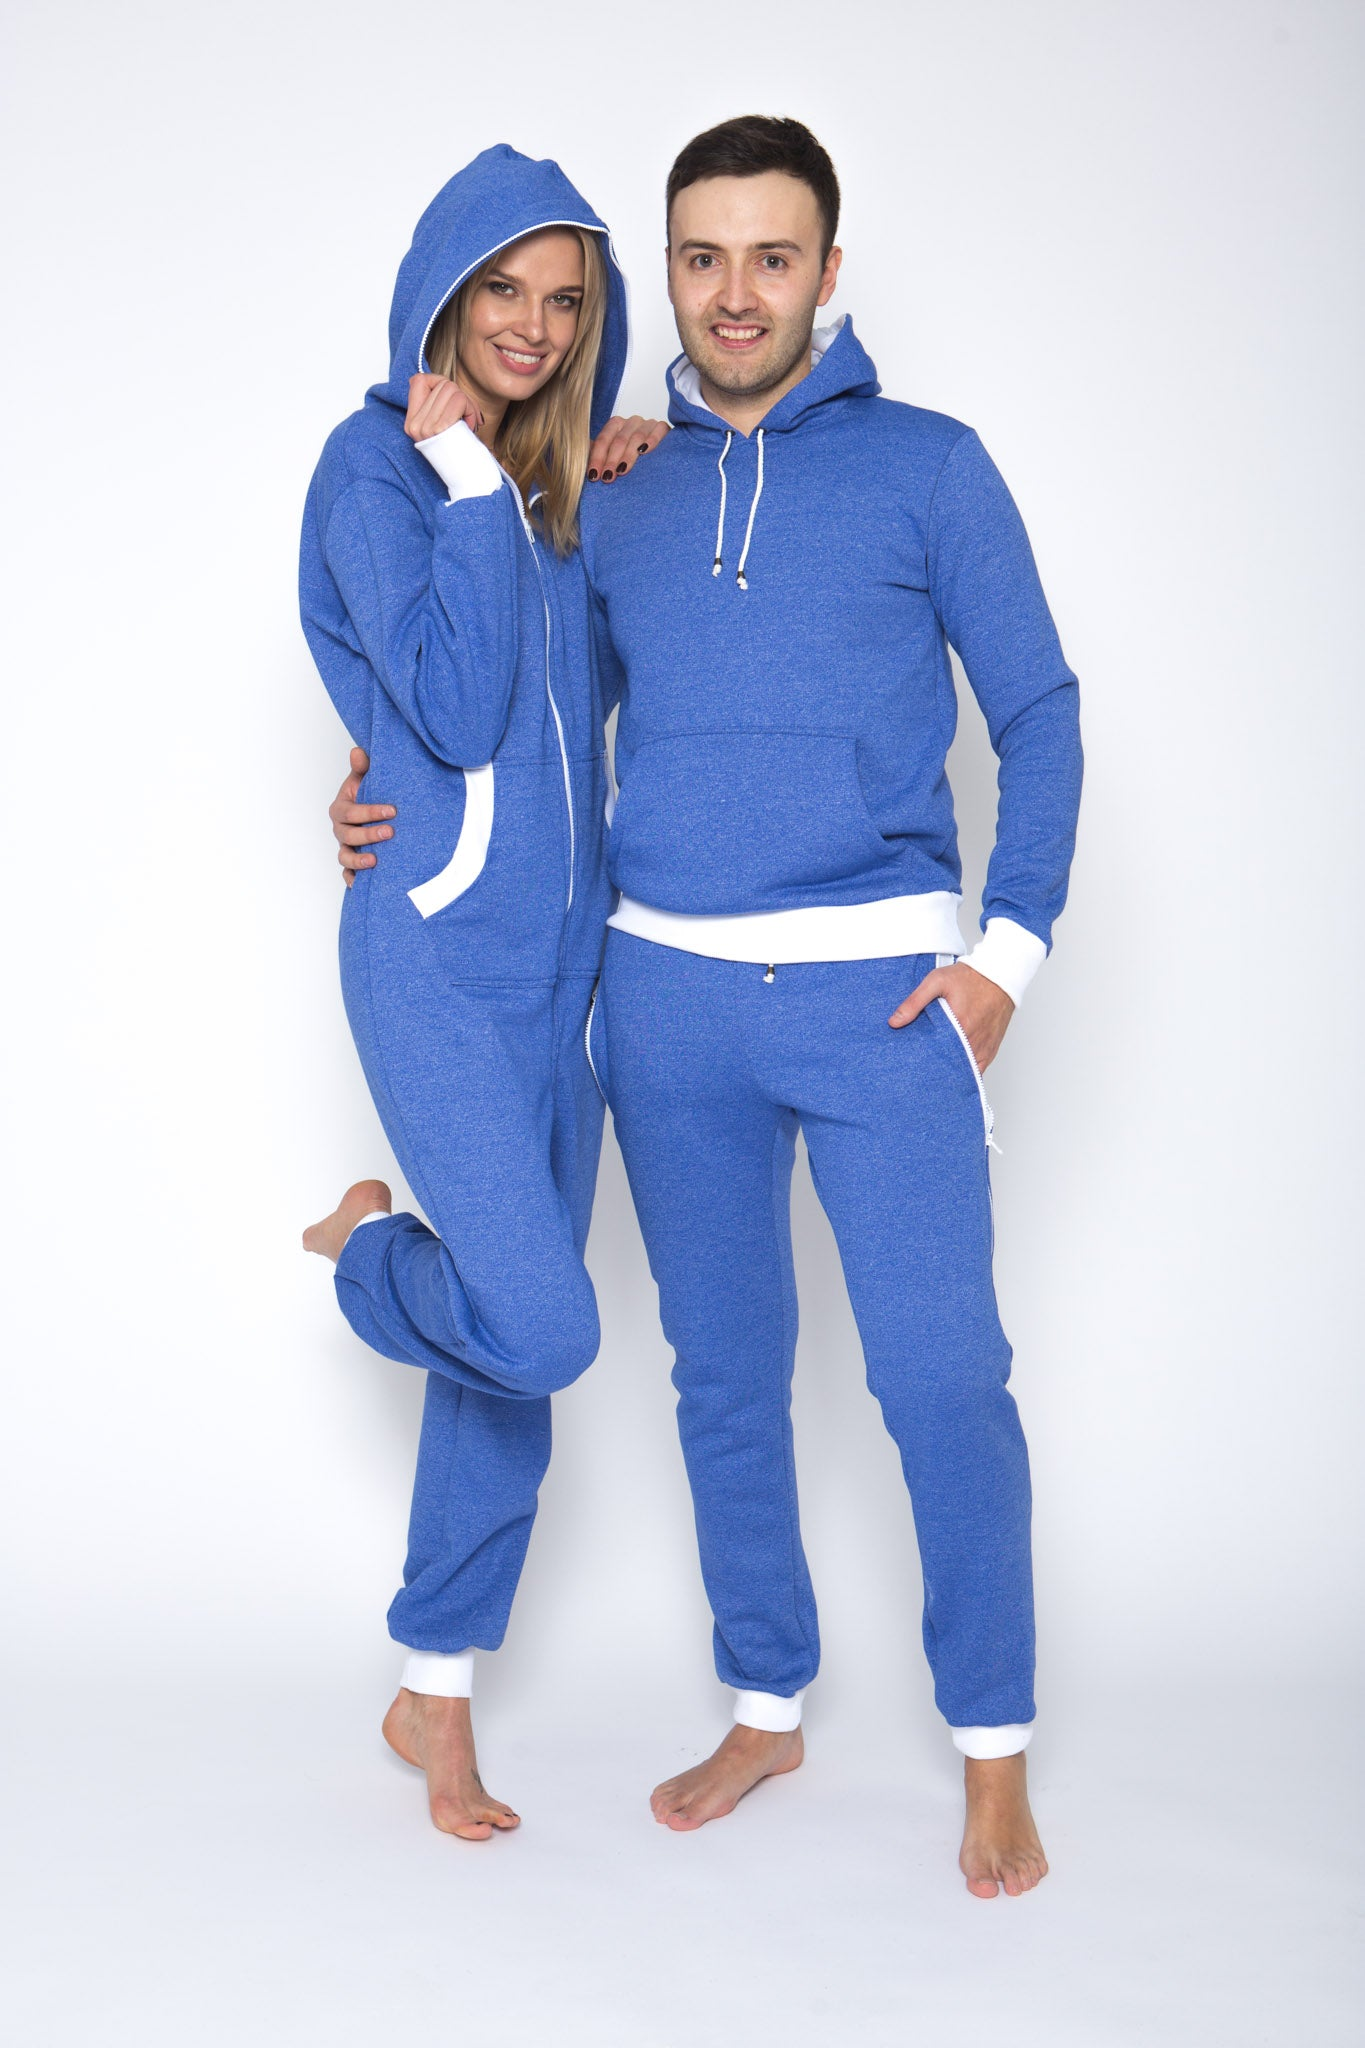 The Loungewear turns classy for Casual Party